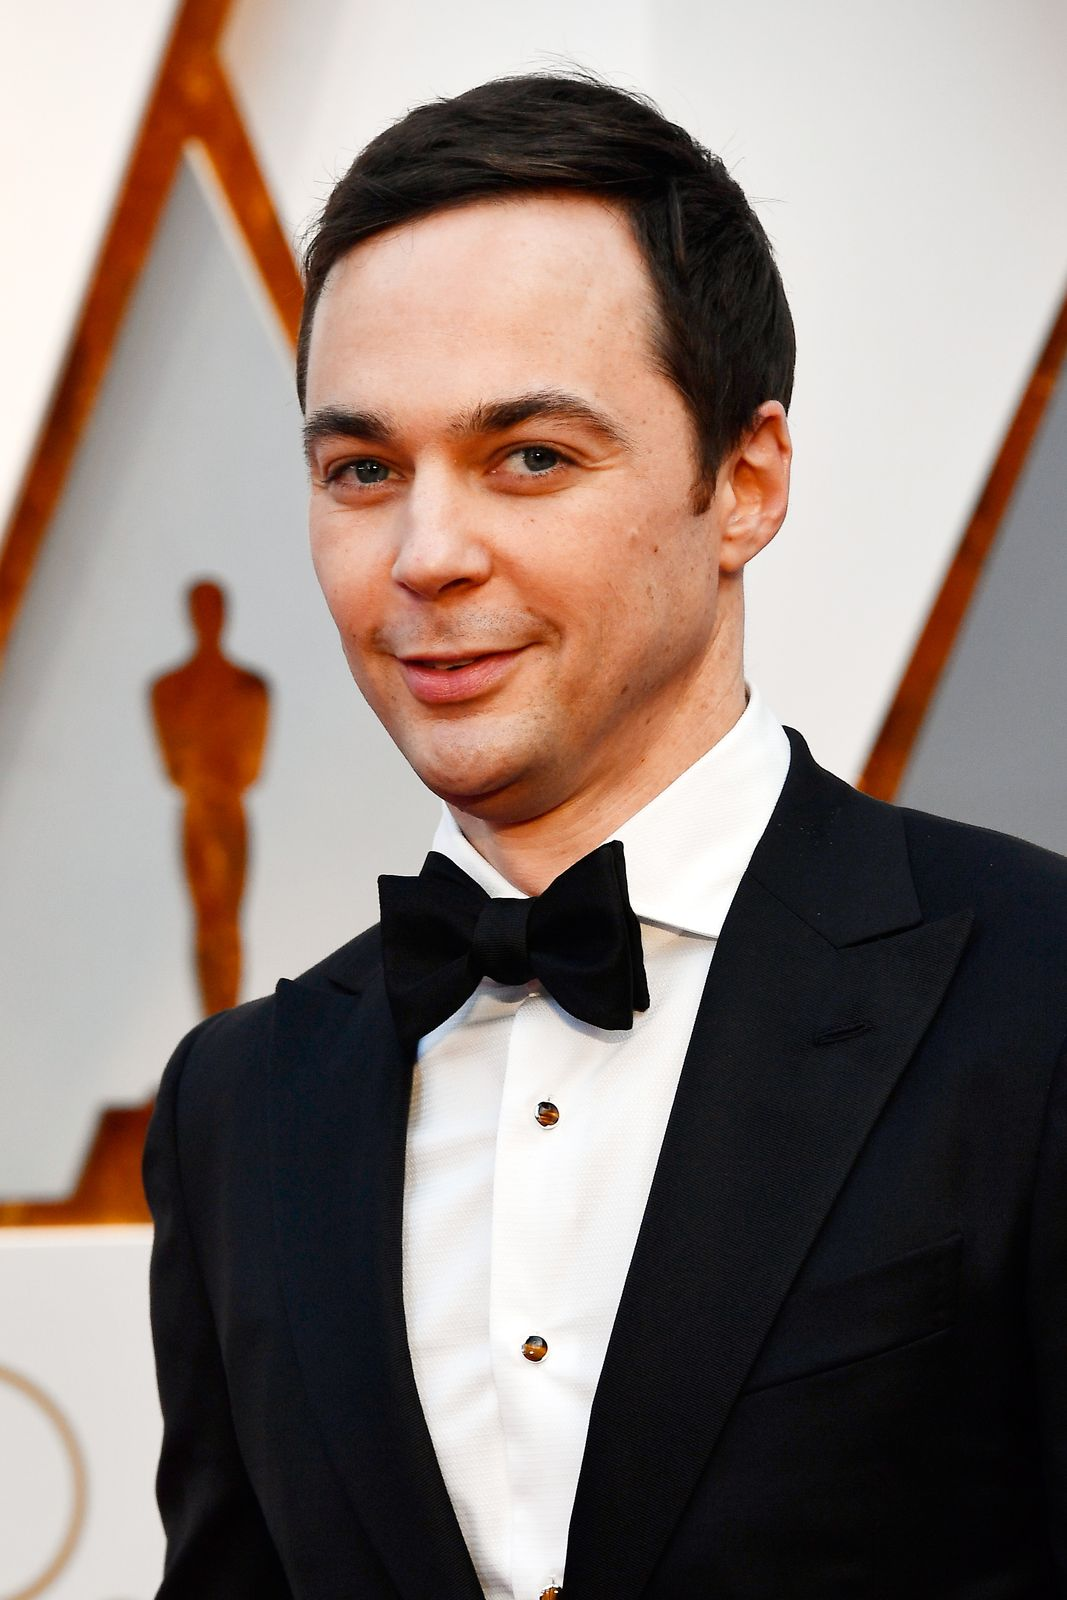 Actor Jim Parsons at the 89th Annual Academy Awards at Hollywood & Highland Center on February 26, 2017 in Hollywood, California   Photo: Getty Images